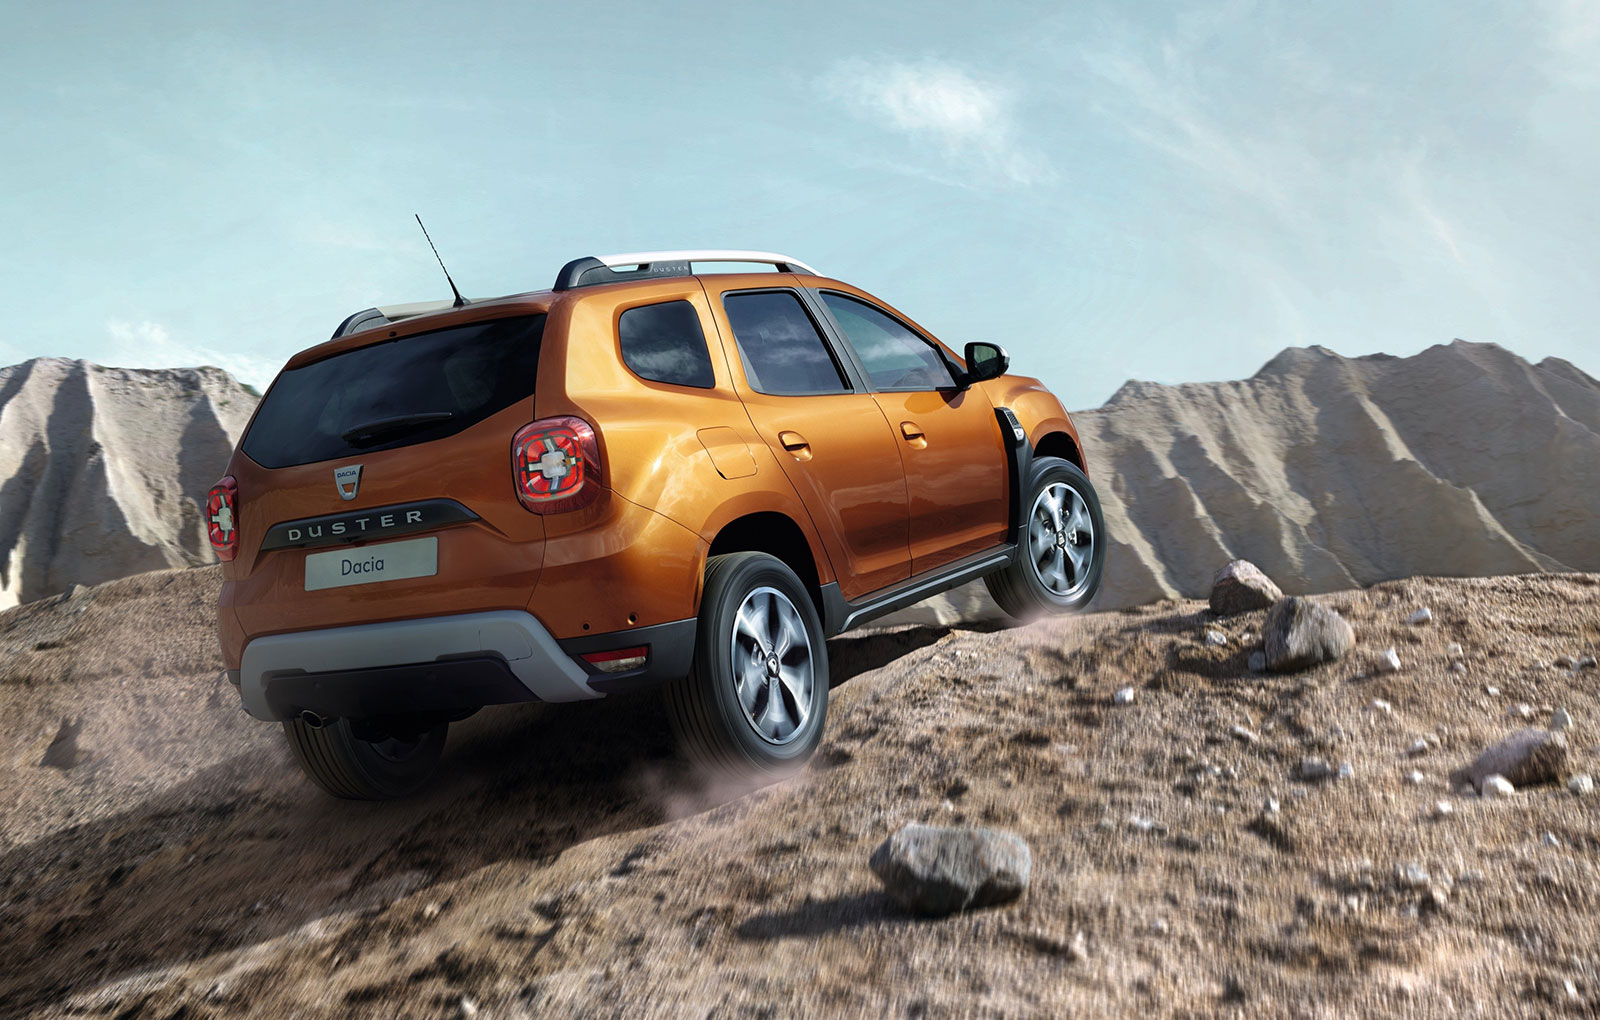 Duster SUV 2018